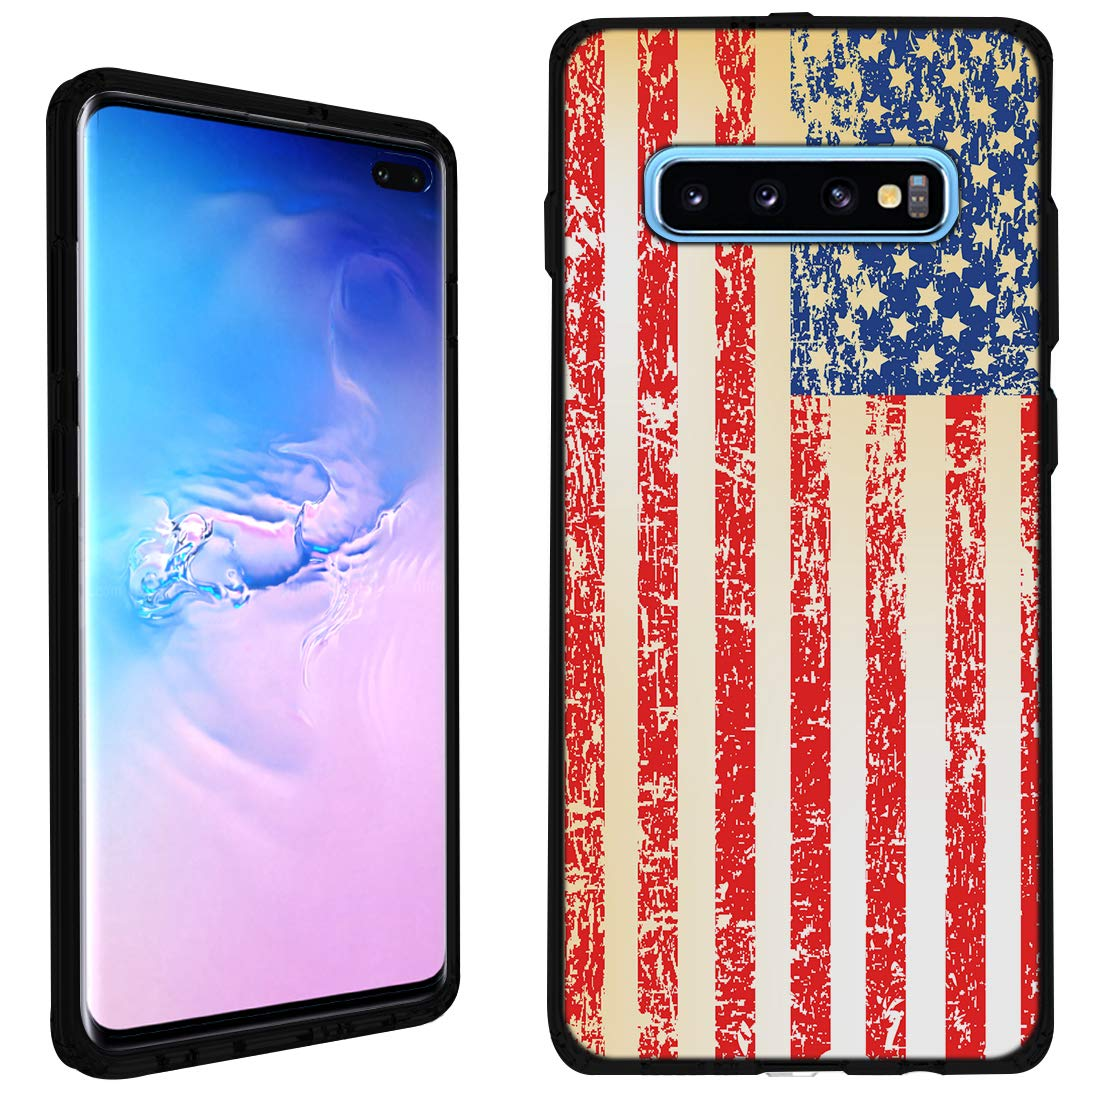 Amazon.com: Funda para Samsung Galaxy S10 Plus (negro ...